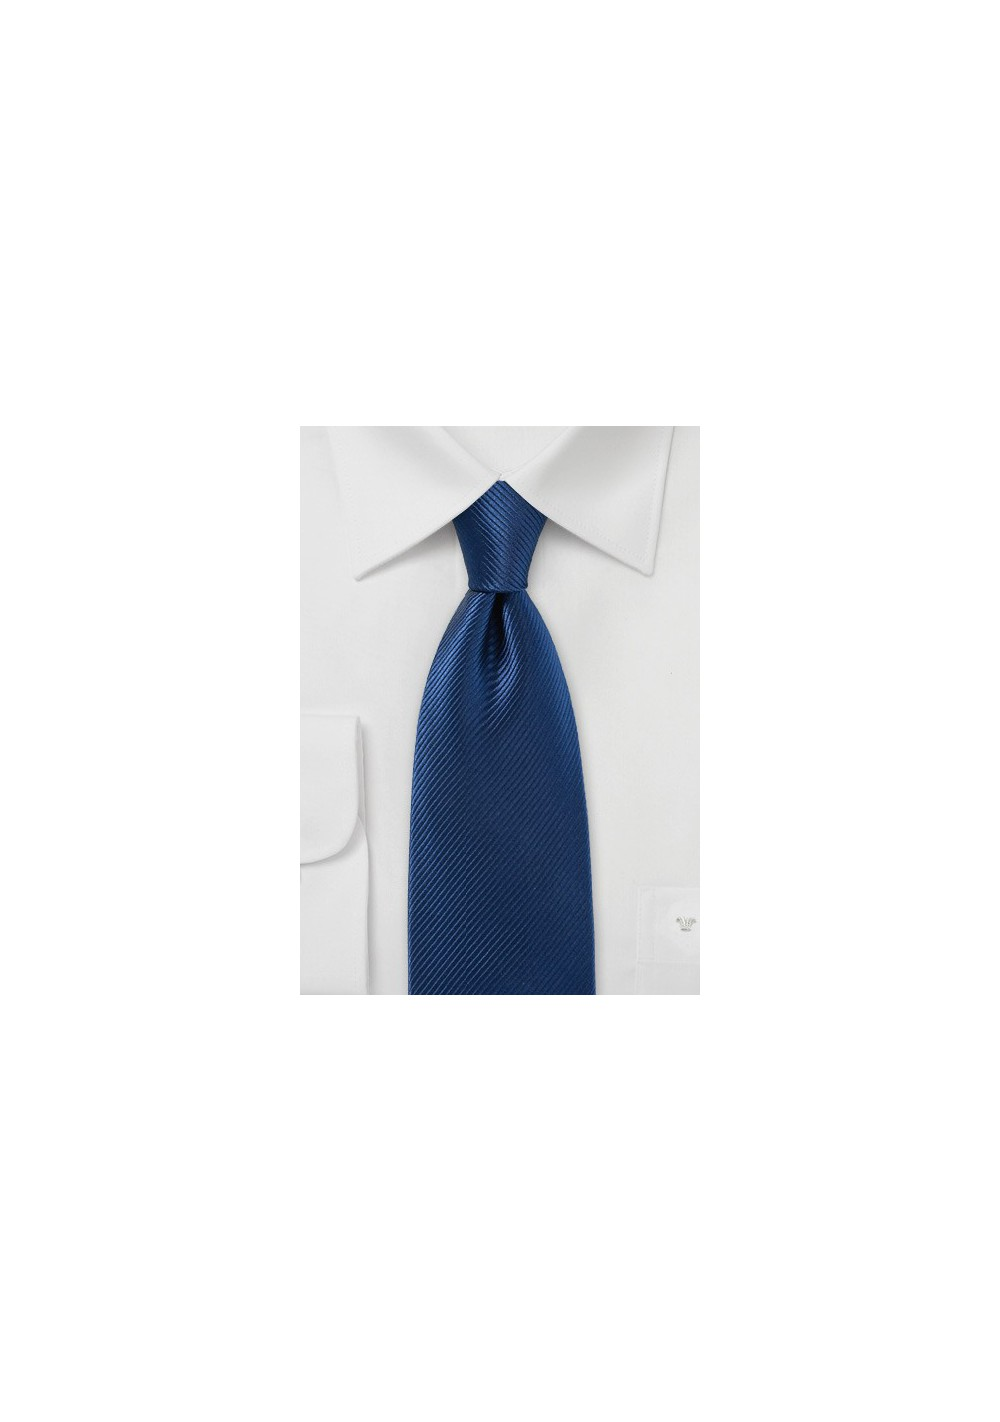 Solid Royal Blue Tie with Narrow Ribbed Texture